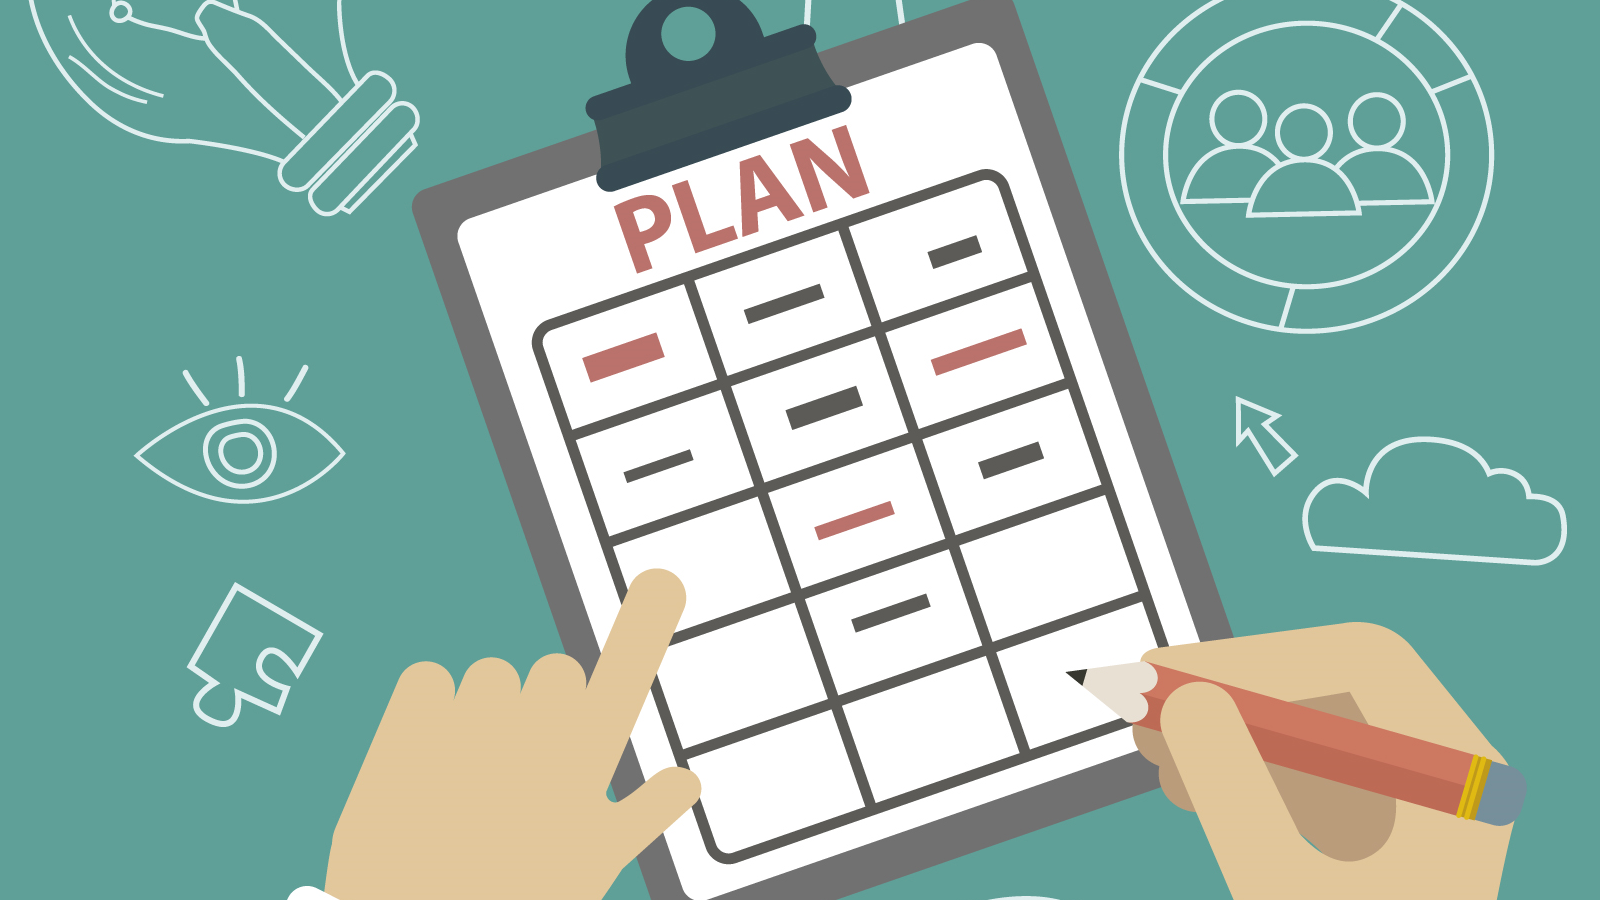 Life planning helps shift focus from returns to life